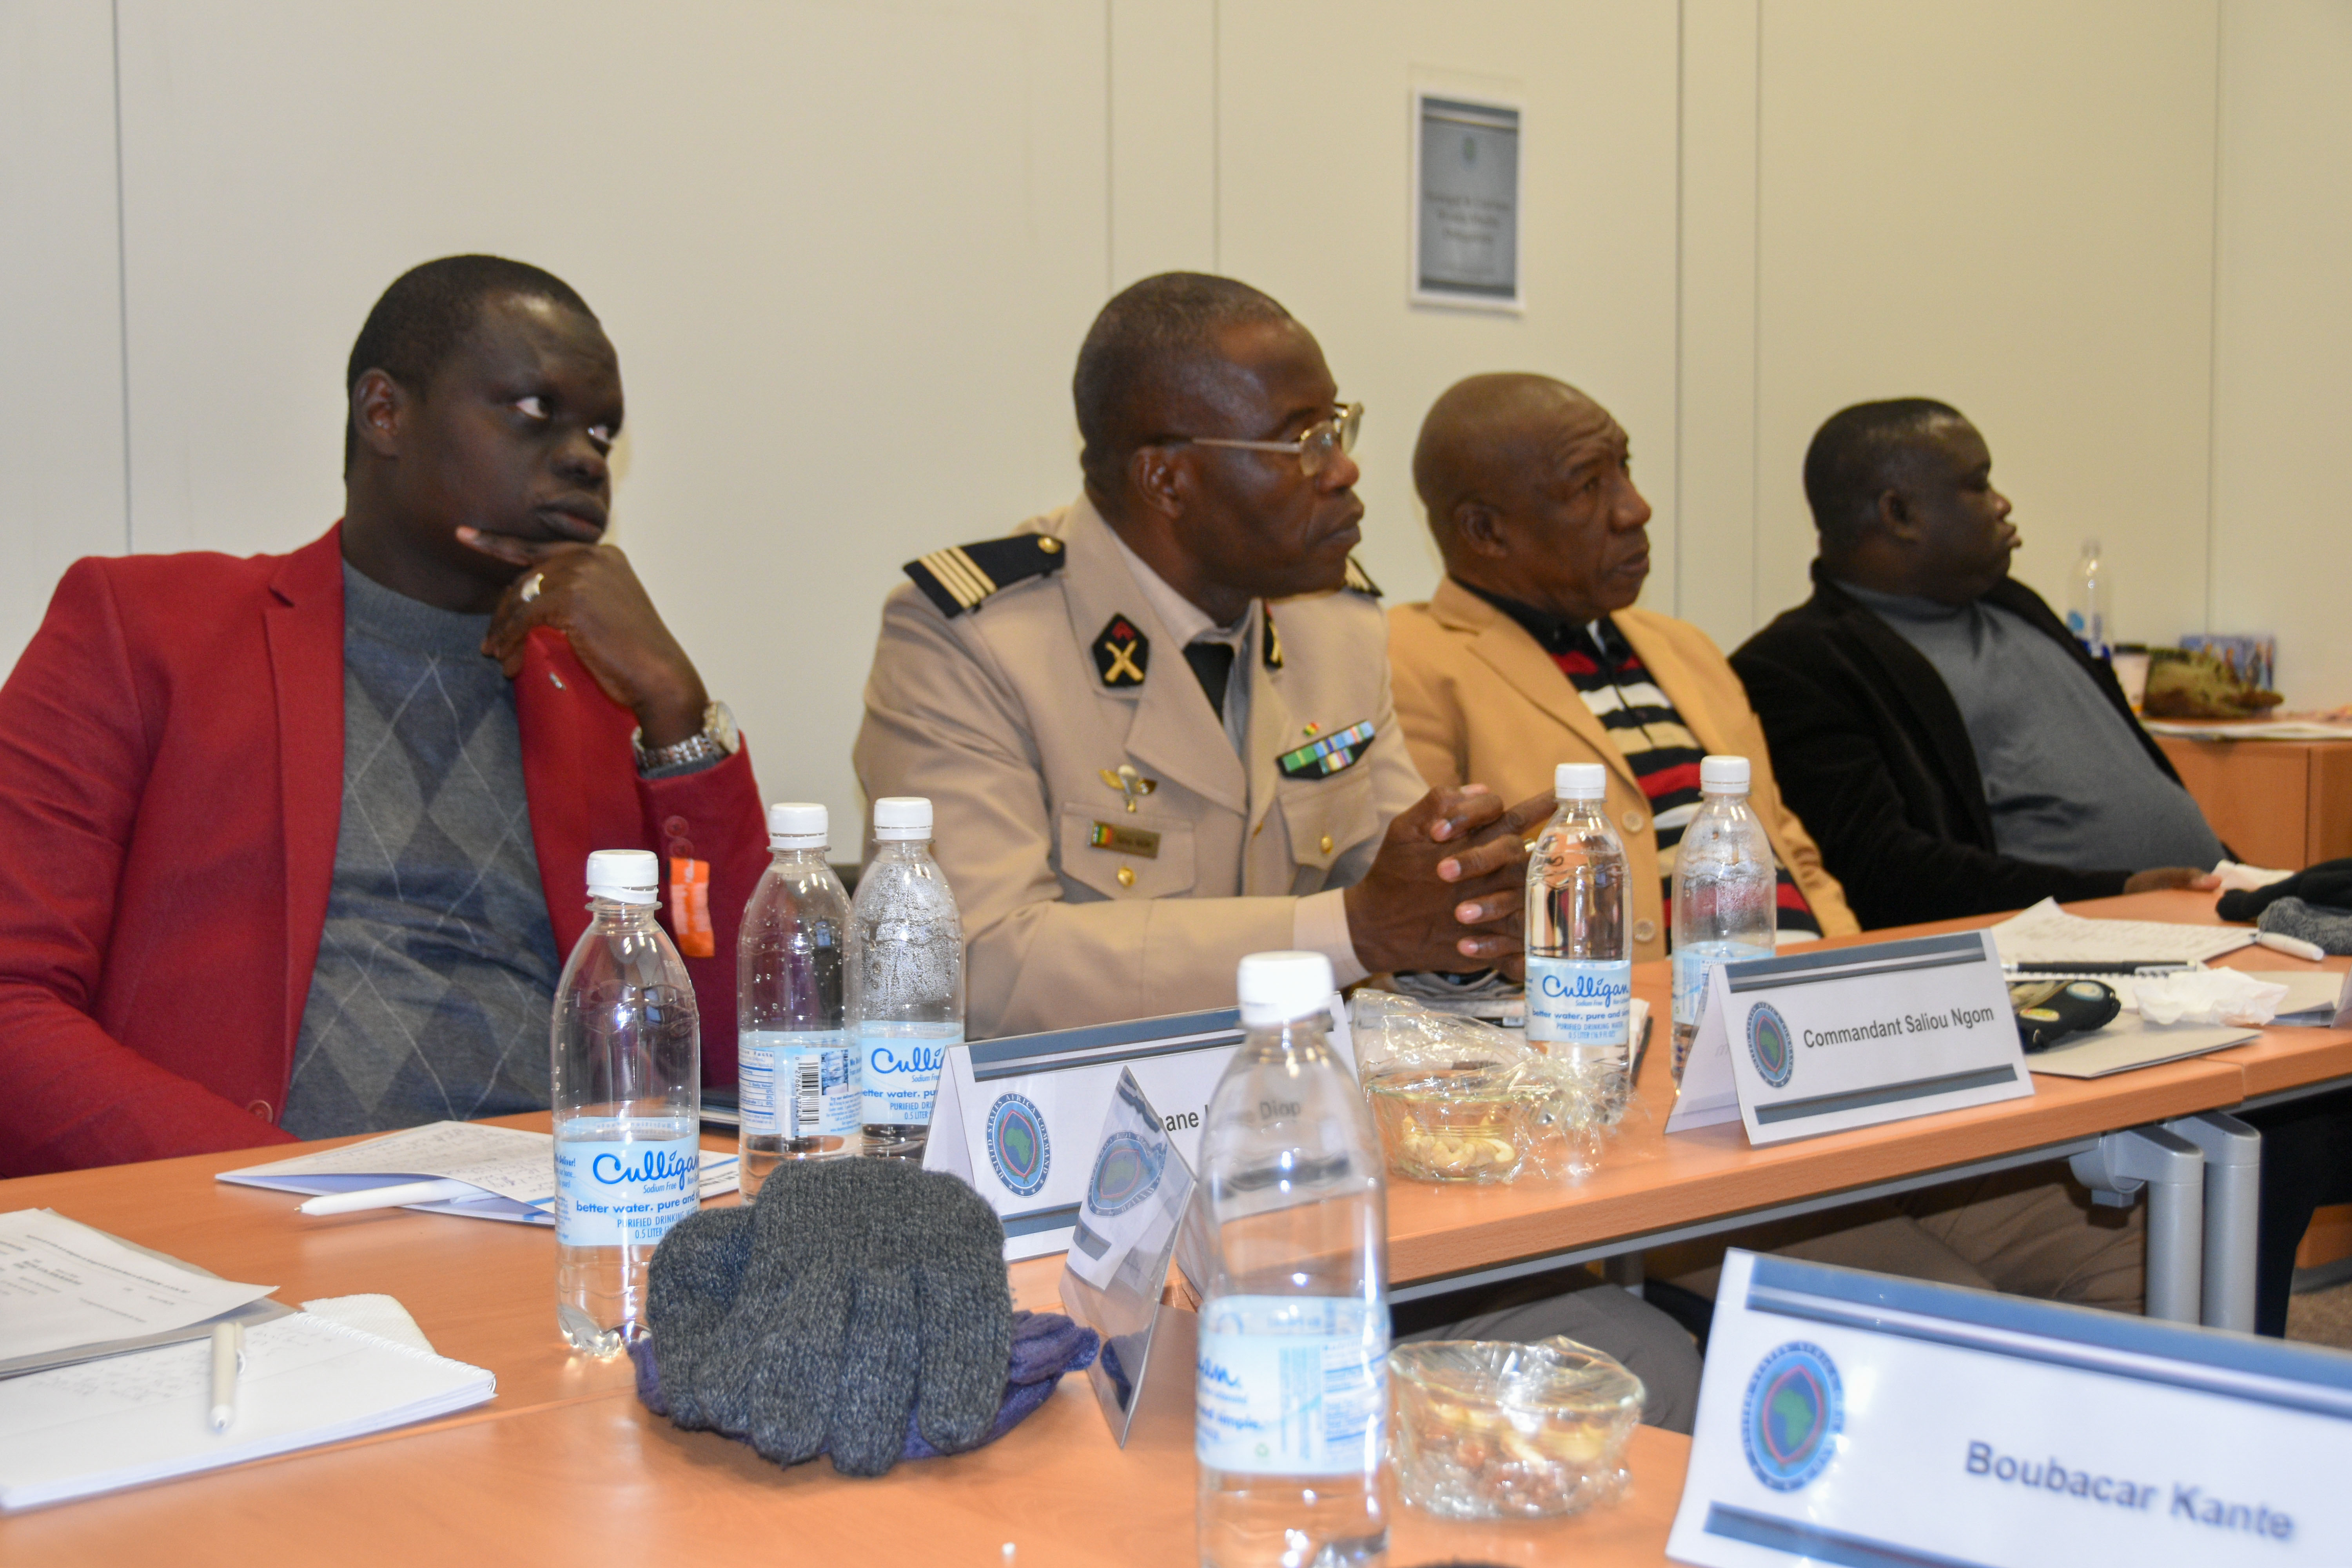 Journalists from various news organizations in Senegal and Guinea Bissau visited U.S. Africa Command, Stuttgart, Germany, Dec. 11-14, 2017. AFRICOM staff provided briefs throughout the week which culminated in an interview of Lt. Gen. James C. Vechery, Deputy to the Commander for Military Operations, U.S. Africa Command.